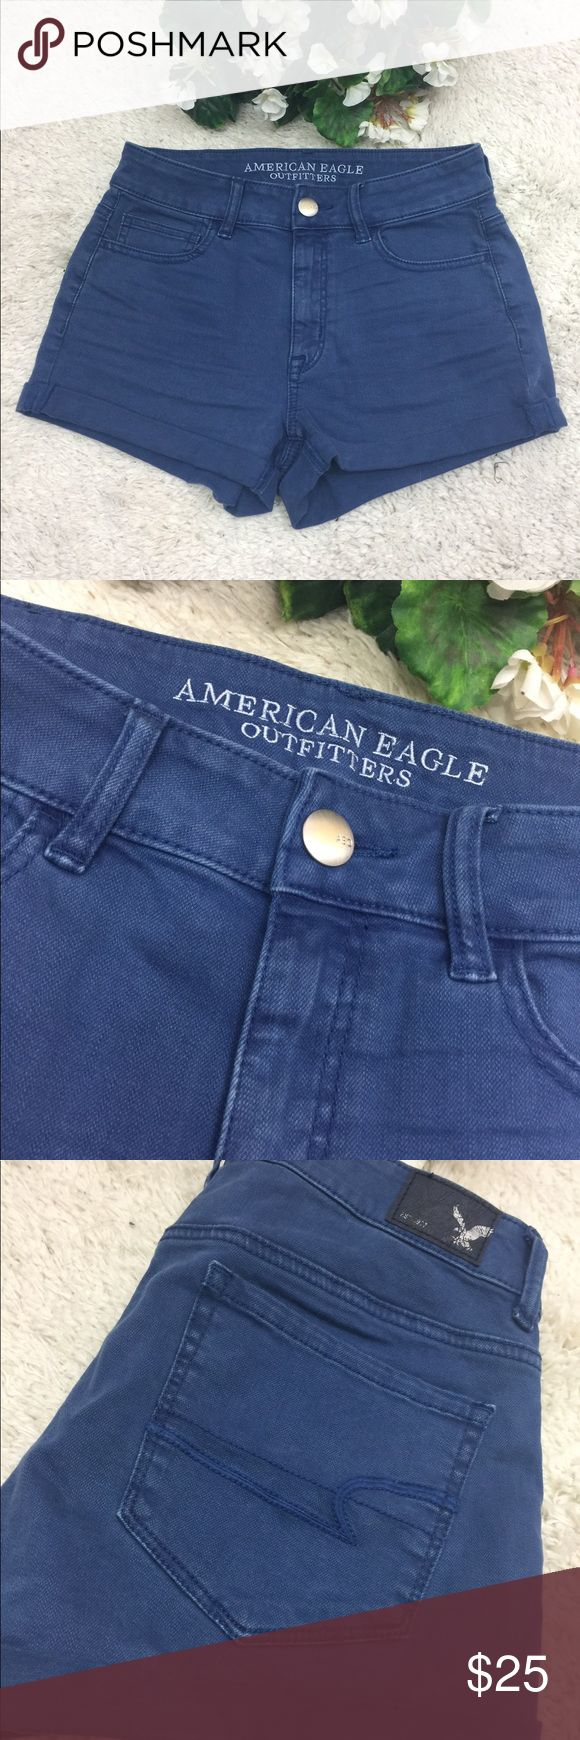 American Eagle Blue High-Rise Short Shorts Size 4 American Eagle Blue High-Rise Short Shorts Size 4. Great used condition! American Eagle Outfitters Shorts Jean Shorts